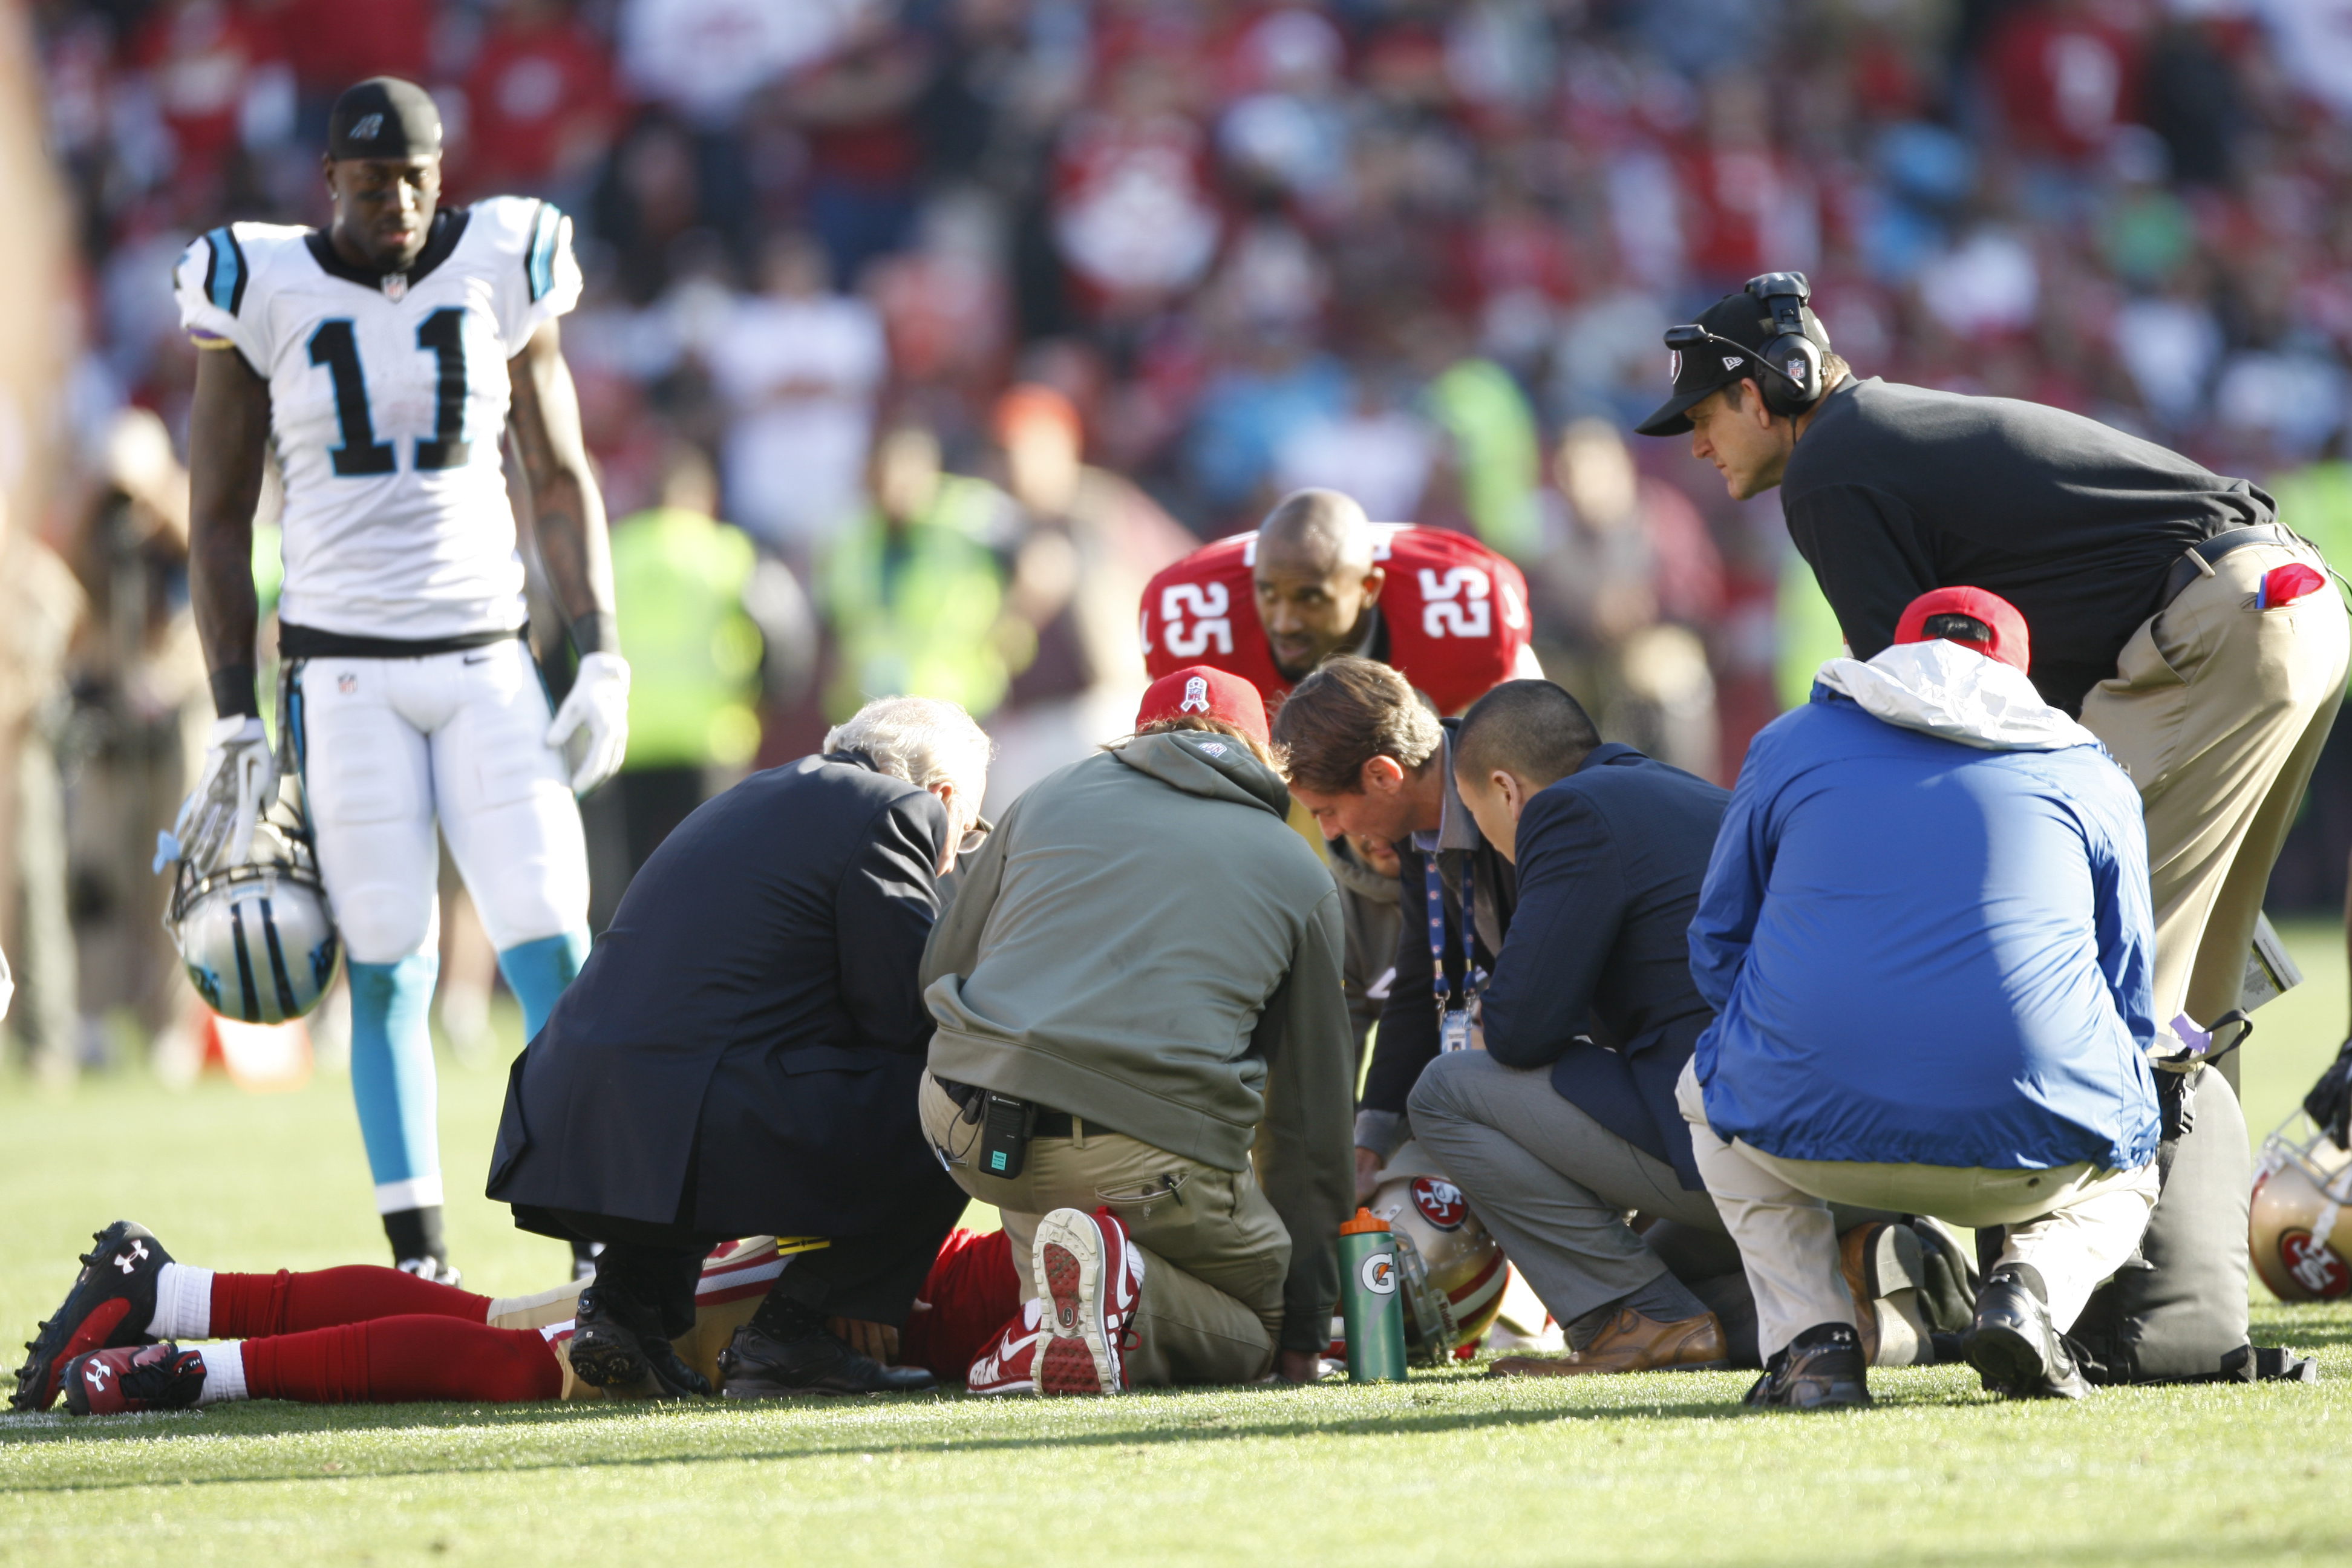 From left: Head Coach Jim Harbaugh of the San Francisco 49ers and the medical staff check out Eric Reid after he received a concussion during the game against the Carolina Panthers on November 10, 2013 in San Francisco, California.